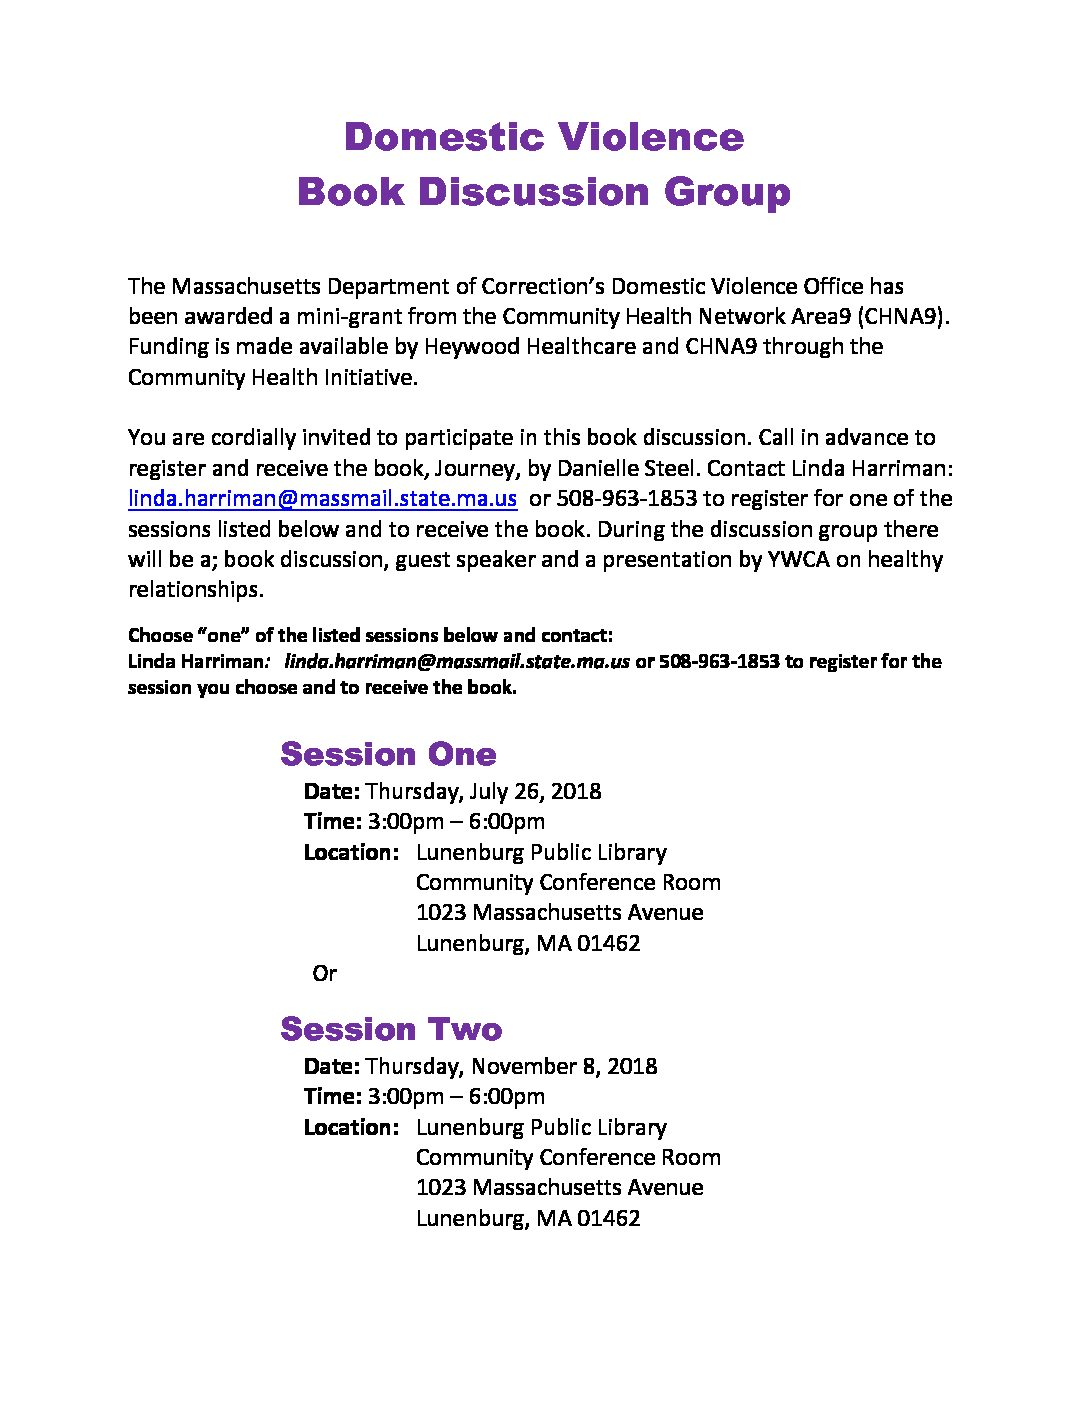 Domestic Violence Book Discussion Group Session One